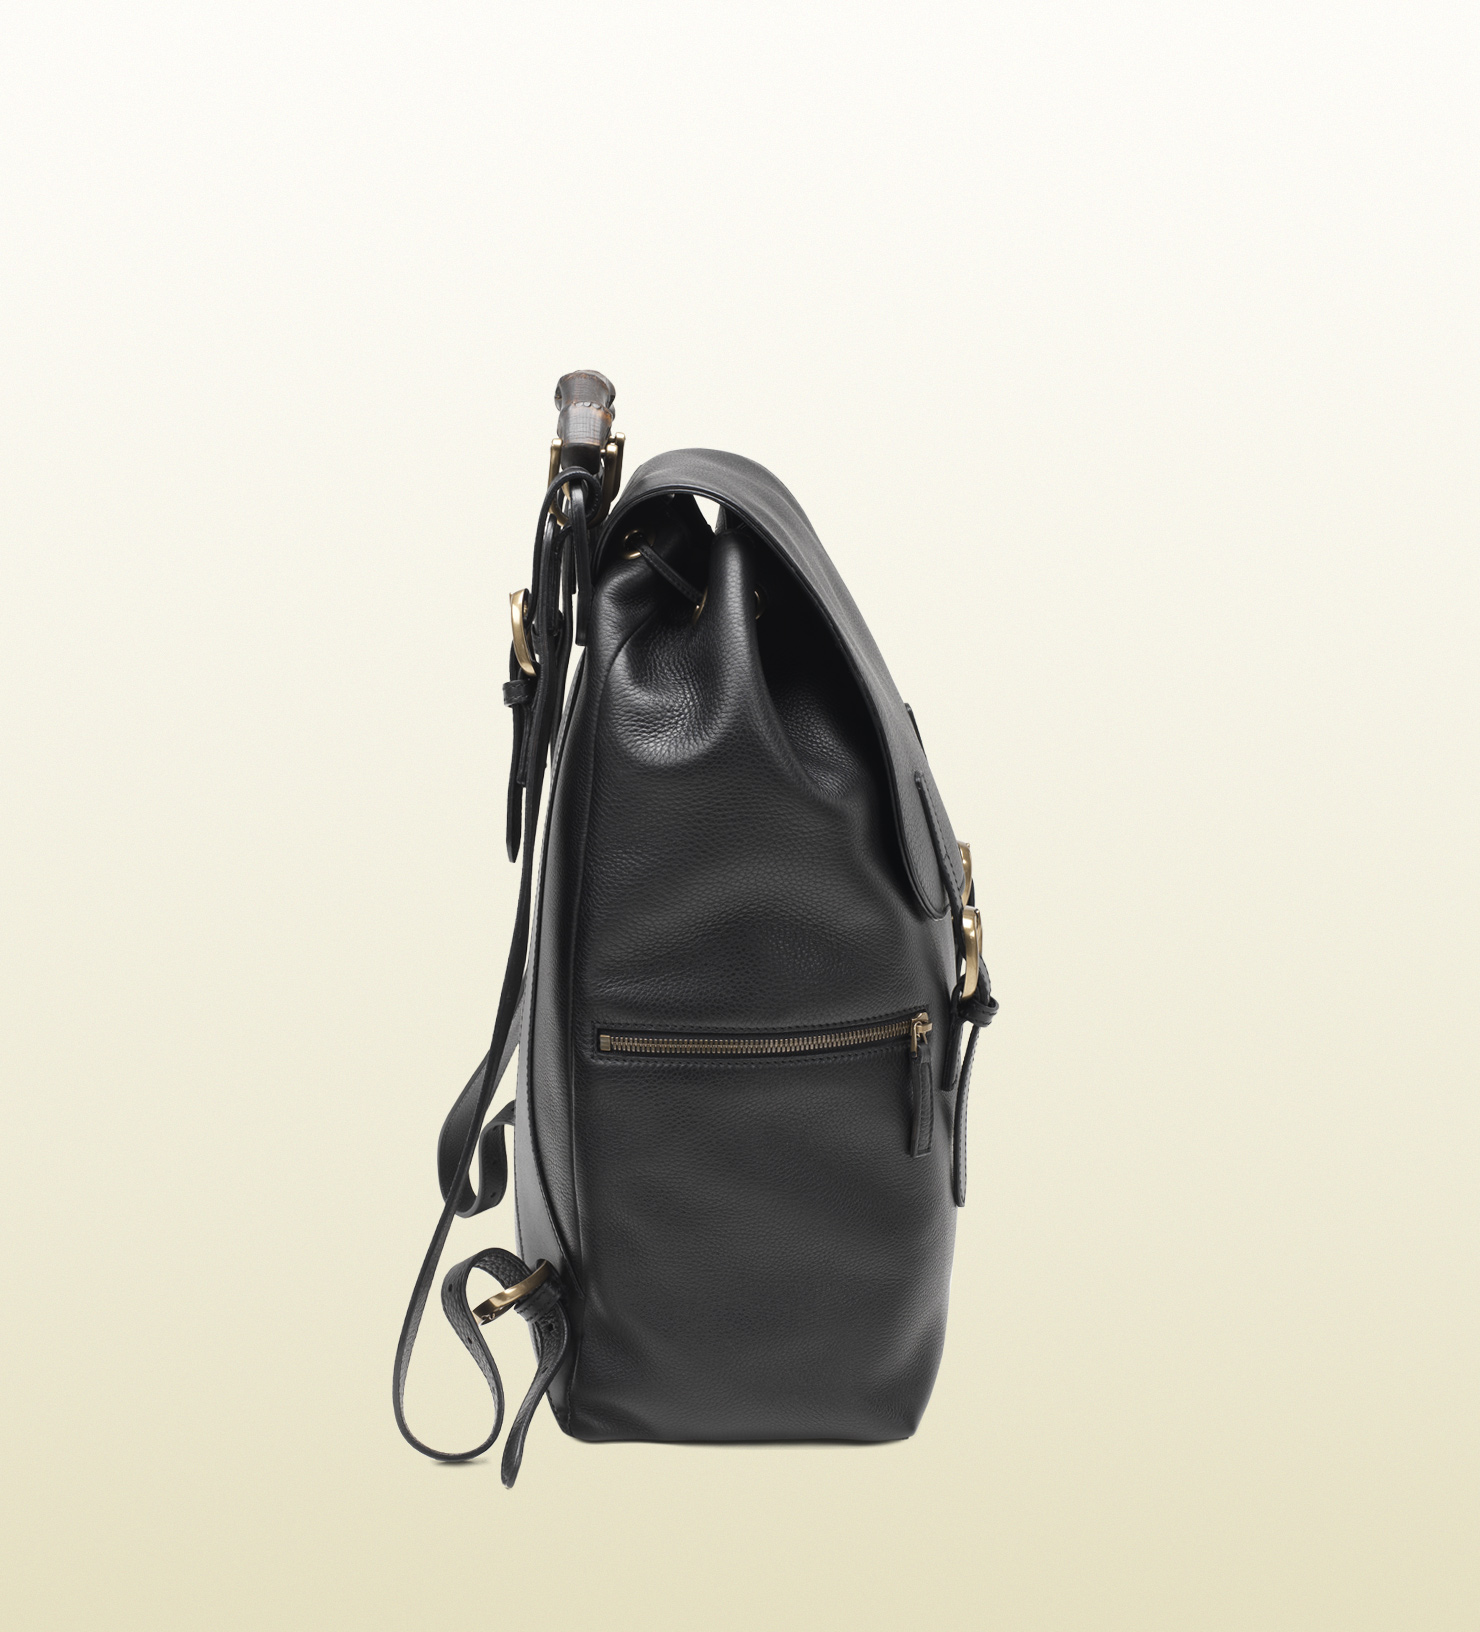 3989705c0ba mens gucci black leather backpack lyst gucci black leather backpack in black  for